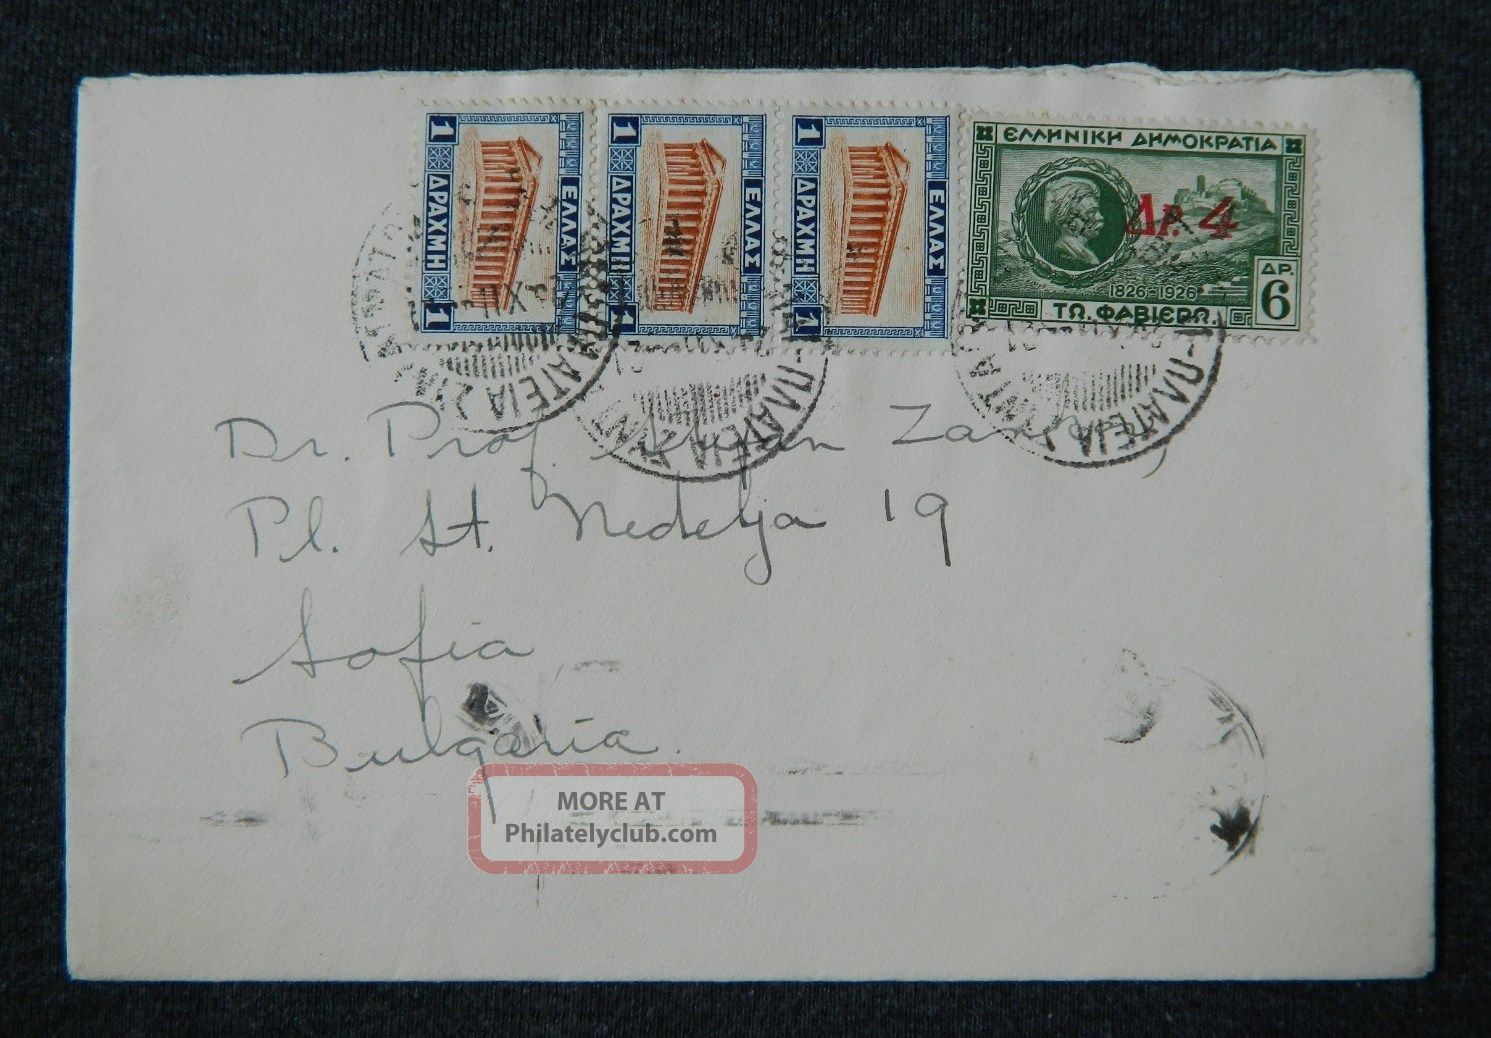 Greece Griechenland To Bulgaria Airmail Cover 1927 Over Print Stamp Worldwide photo